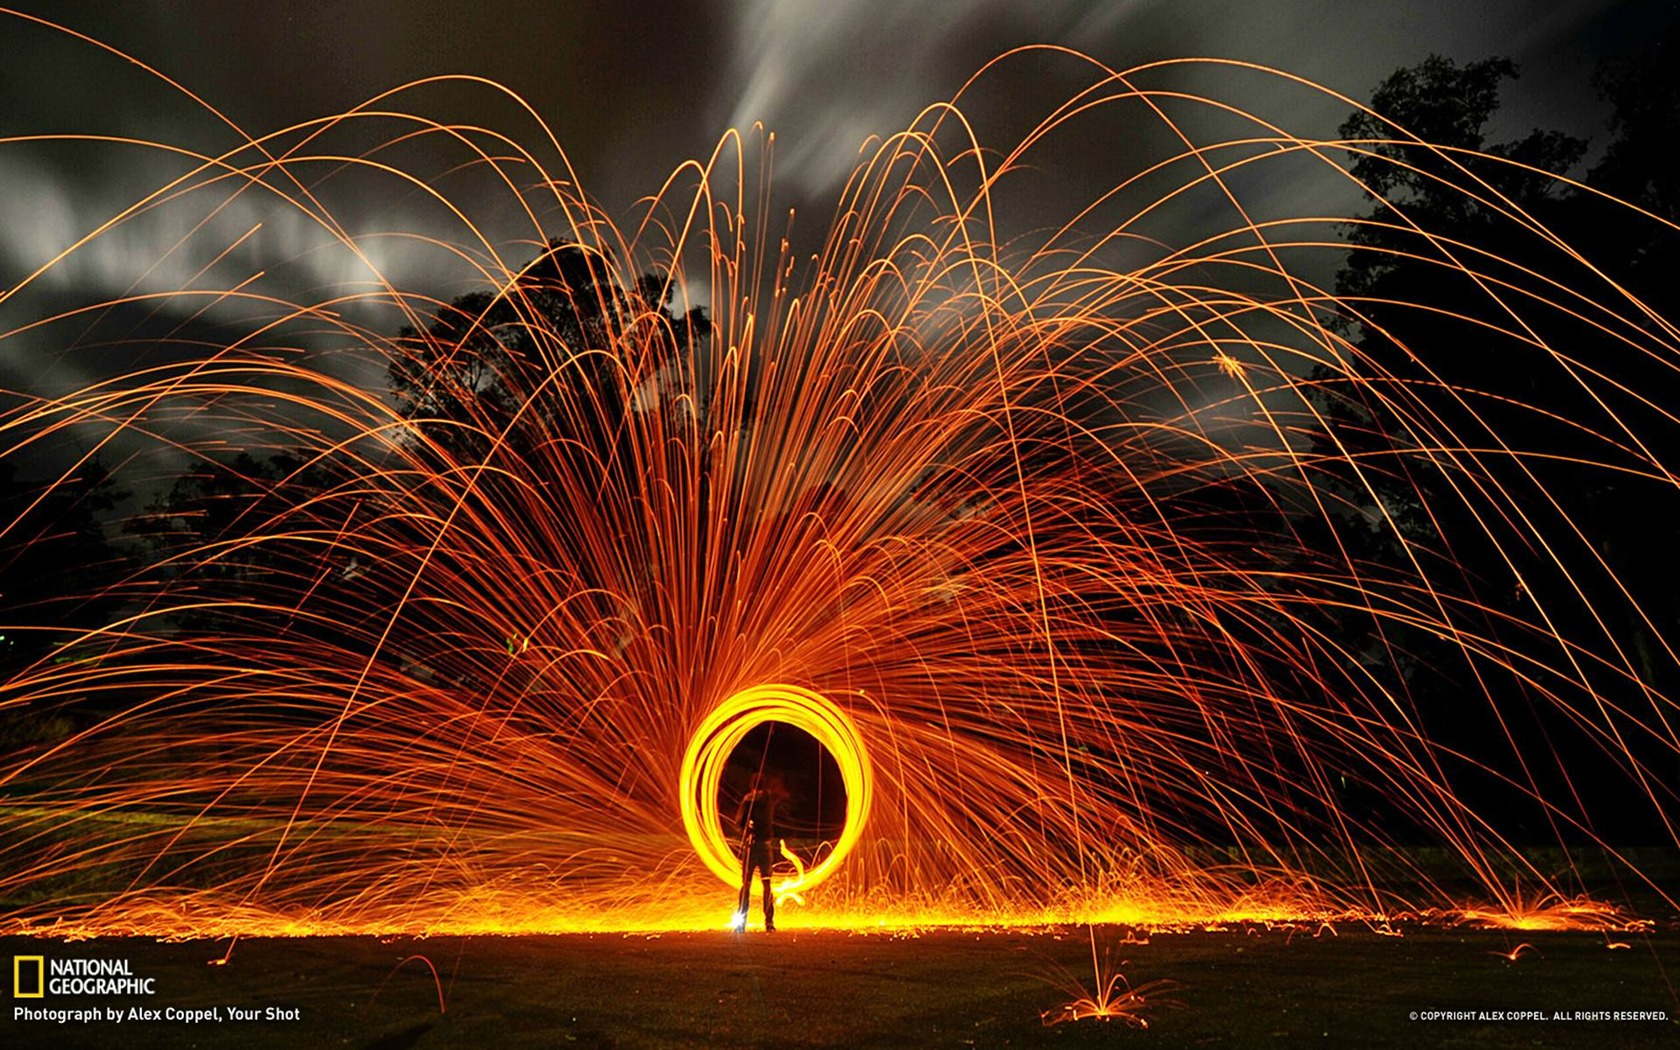 Wallpaper download national geographic - Circle Of Sparks National Geographic Wallpaper 1680x1050 Wallpaper Download